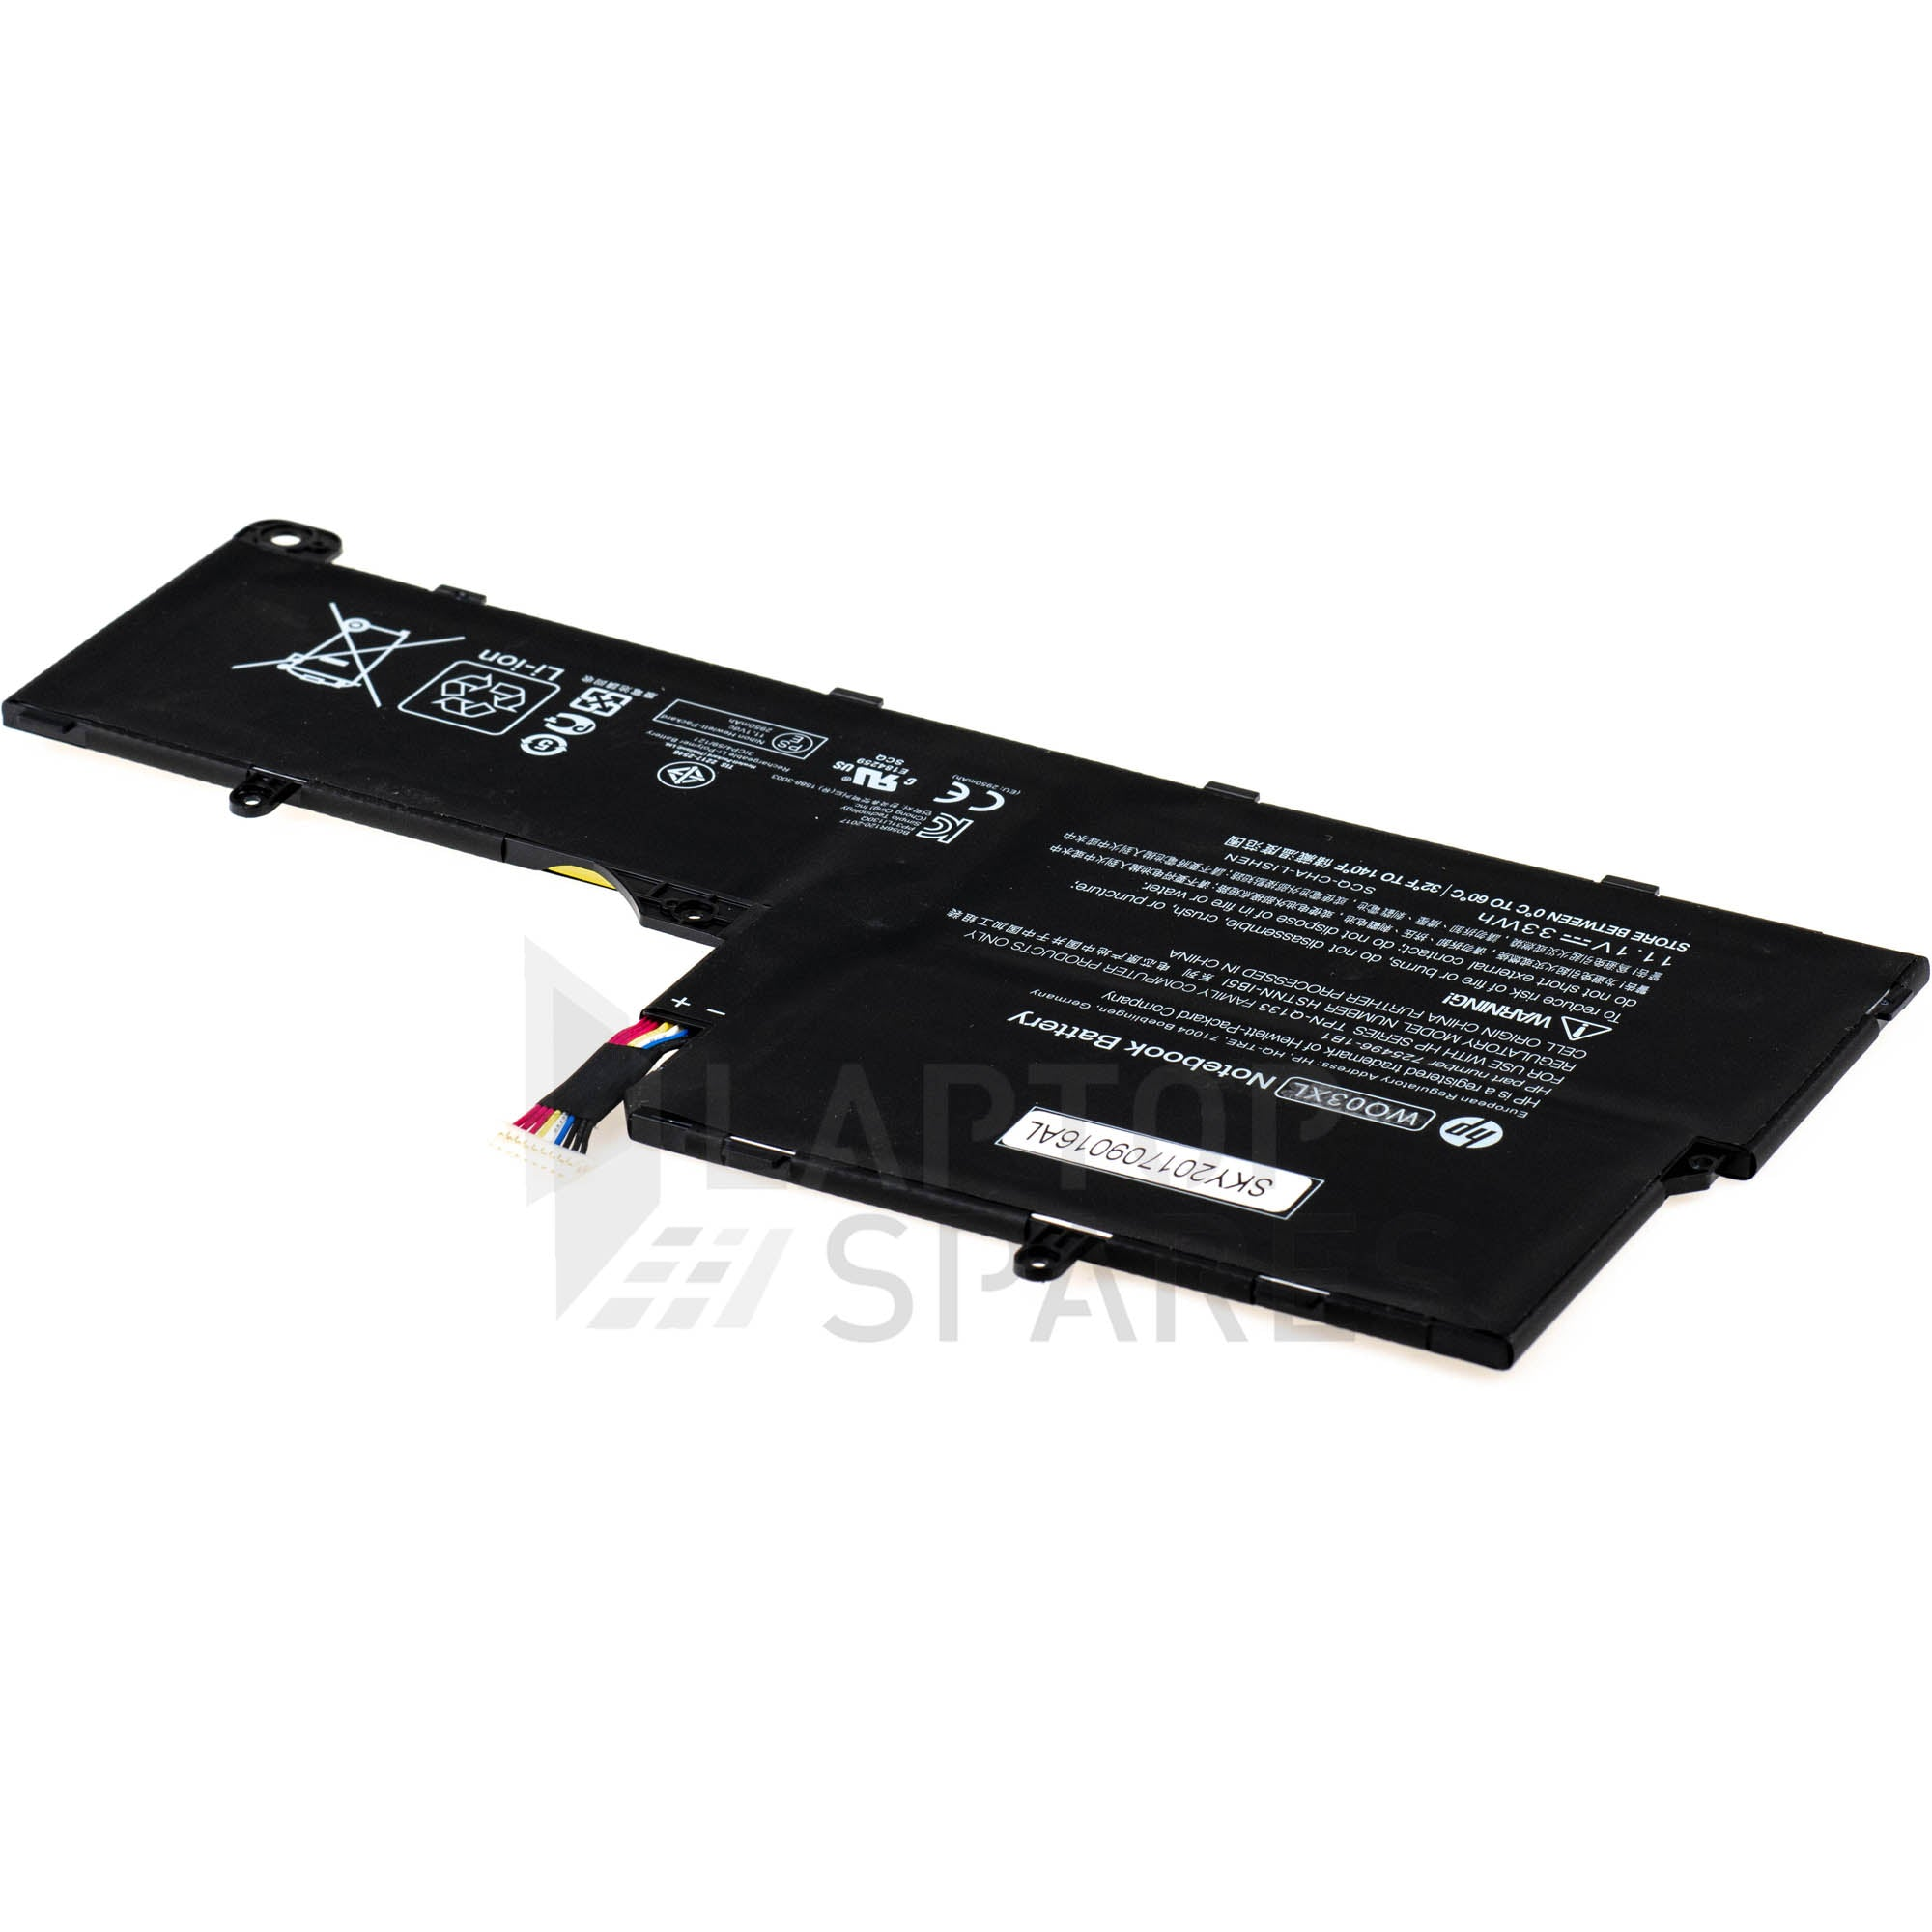 HP Split X2 13-M000 WO03XL 2900mAh 4 Cell Battery